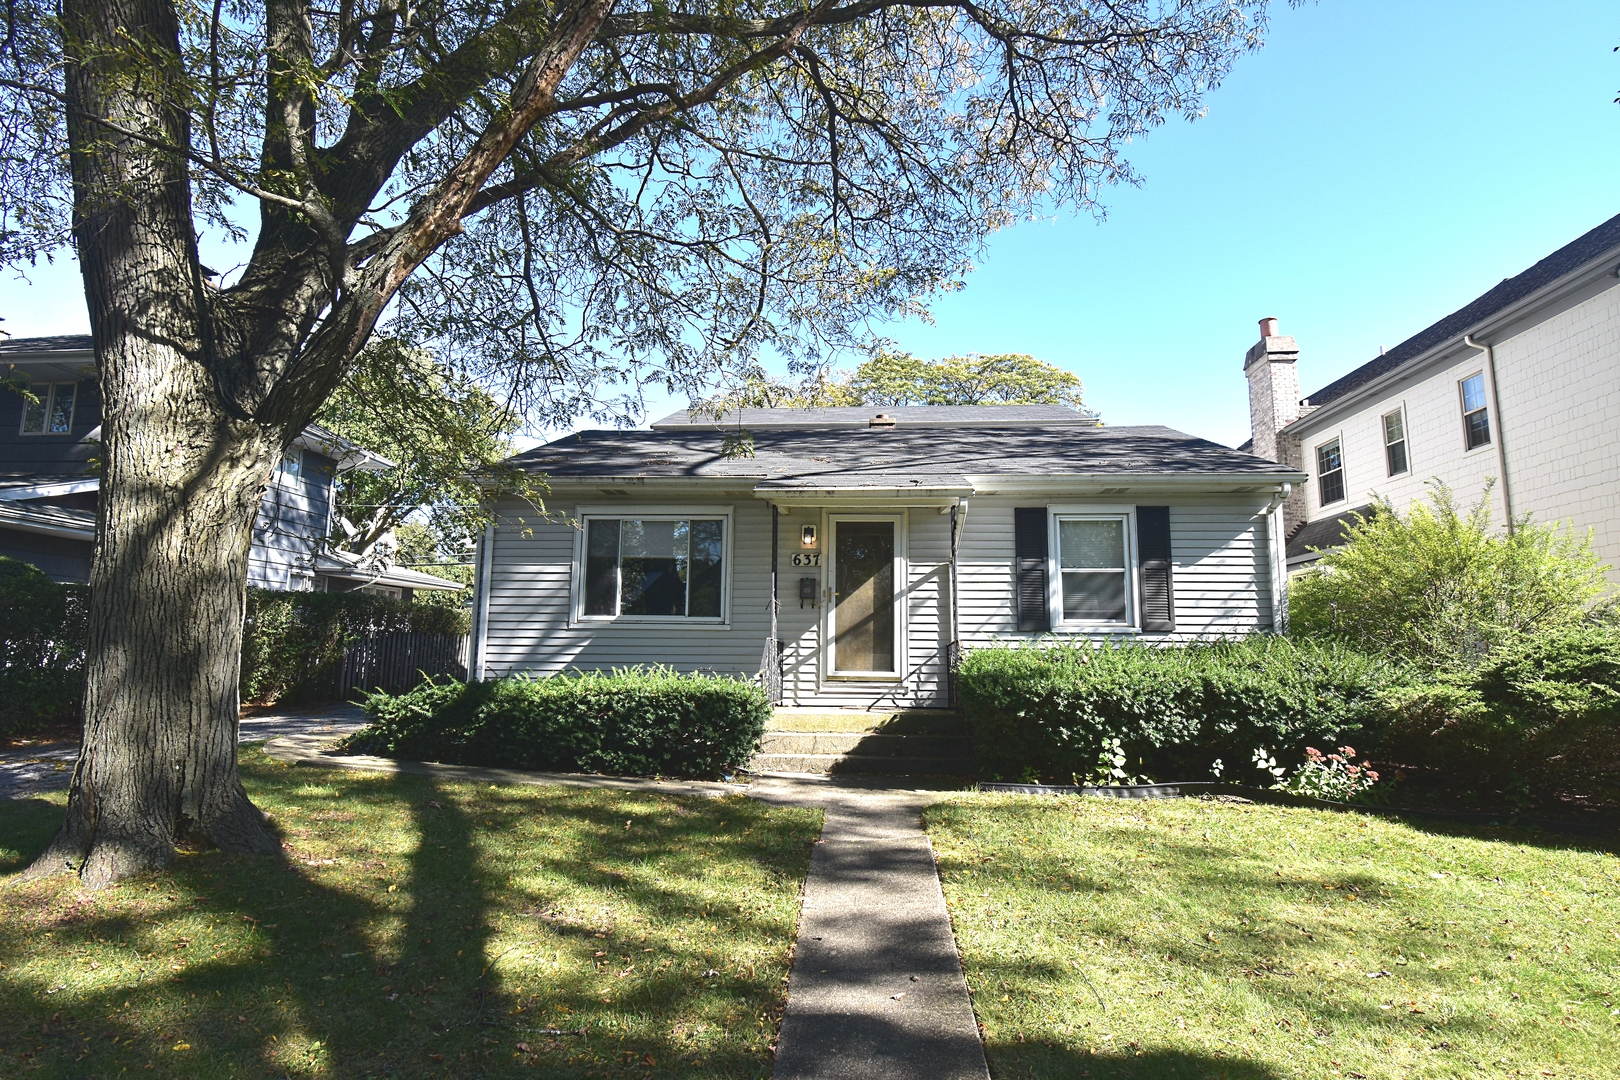 637 South Bruner Street, Hinsdale, Illinois 60521